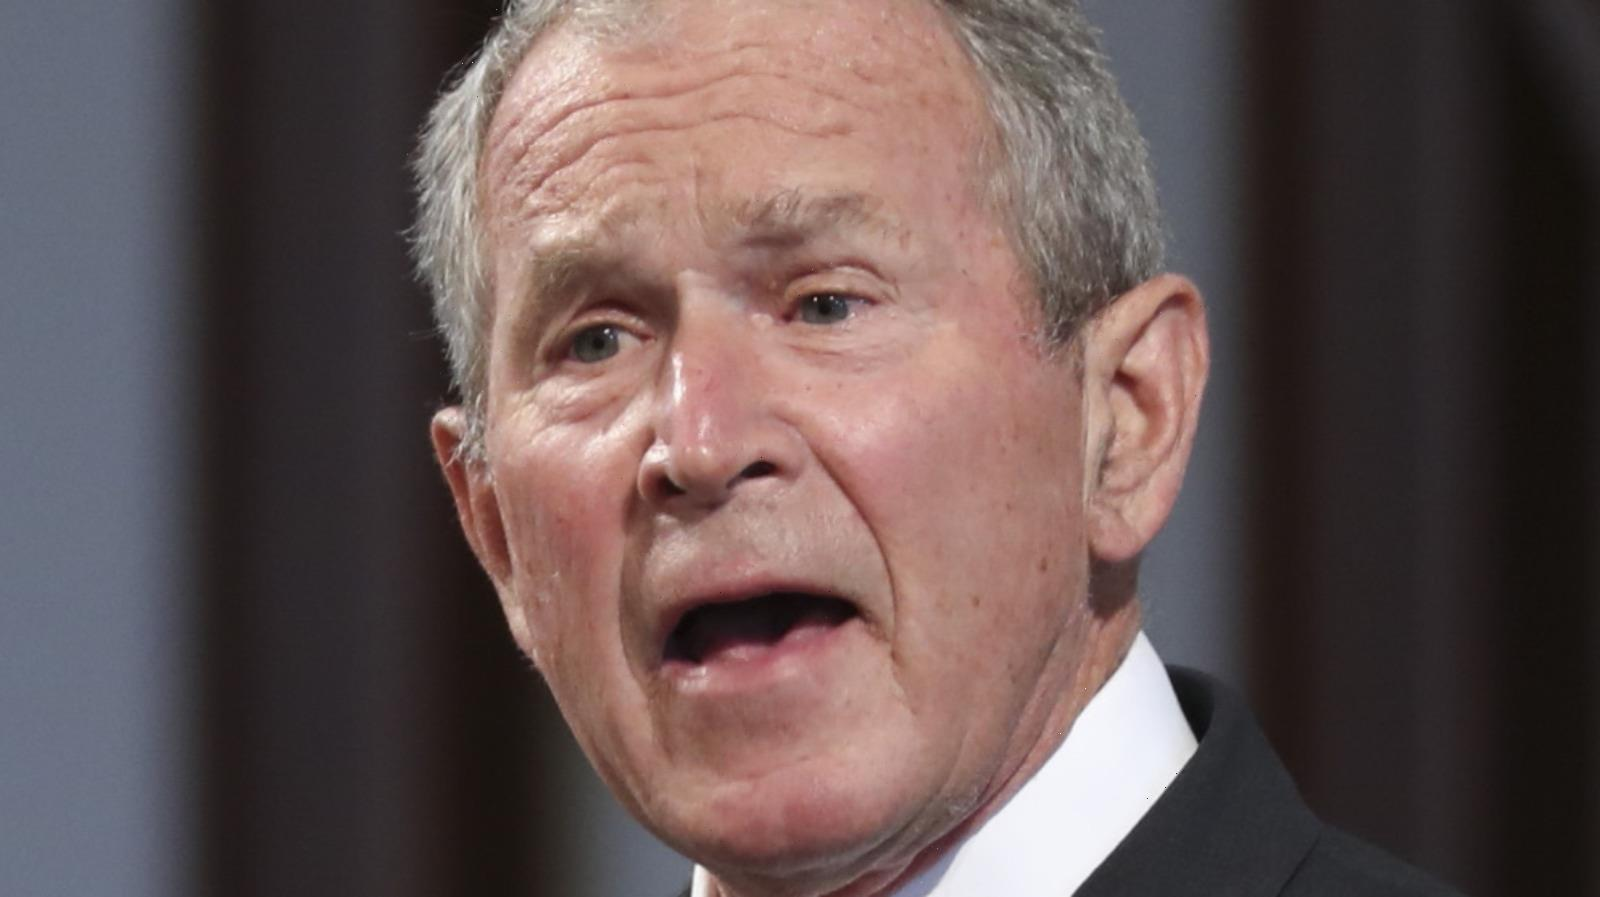 George W. Bush Couldn't Believe His Friendship With This Person Caused Such A Stir